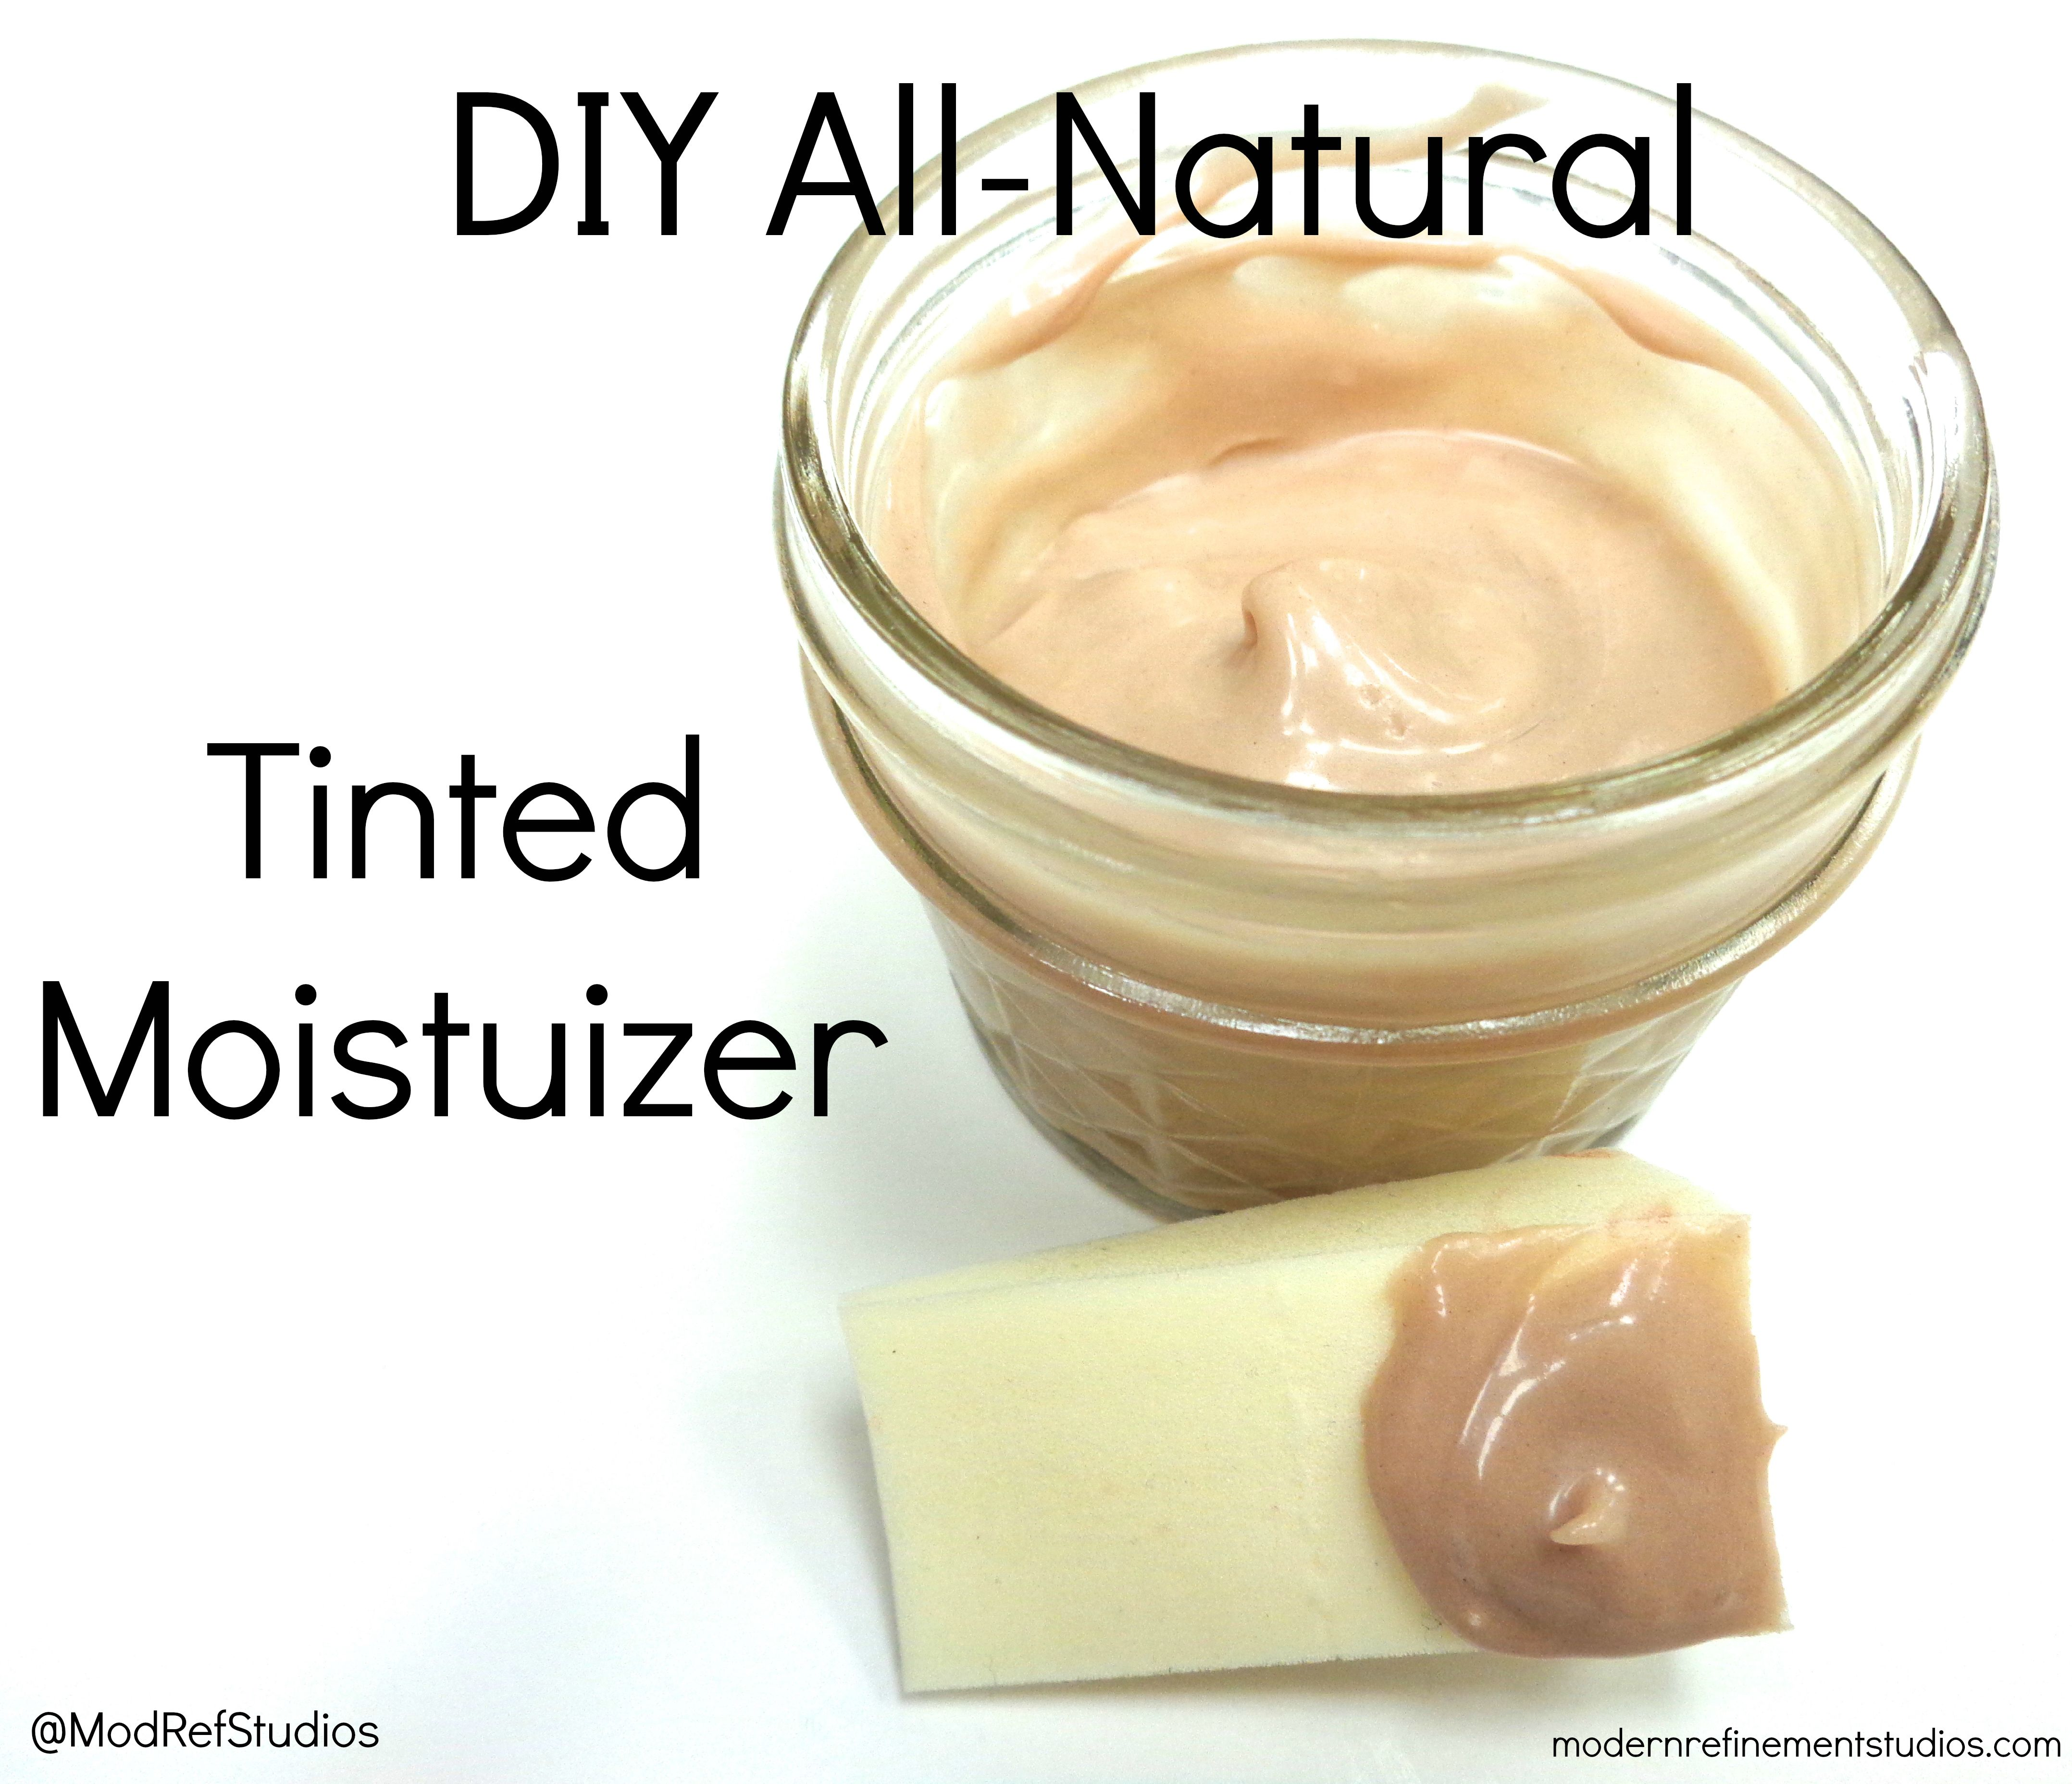 DIY all-natural tinted moisturizer